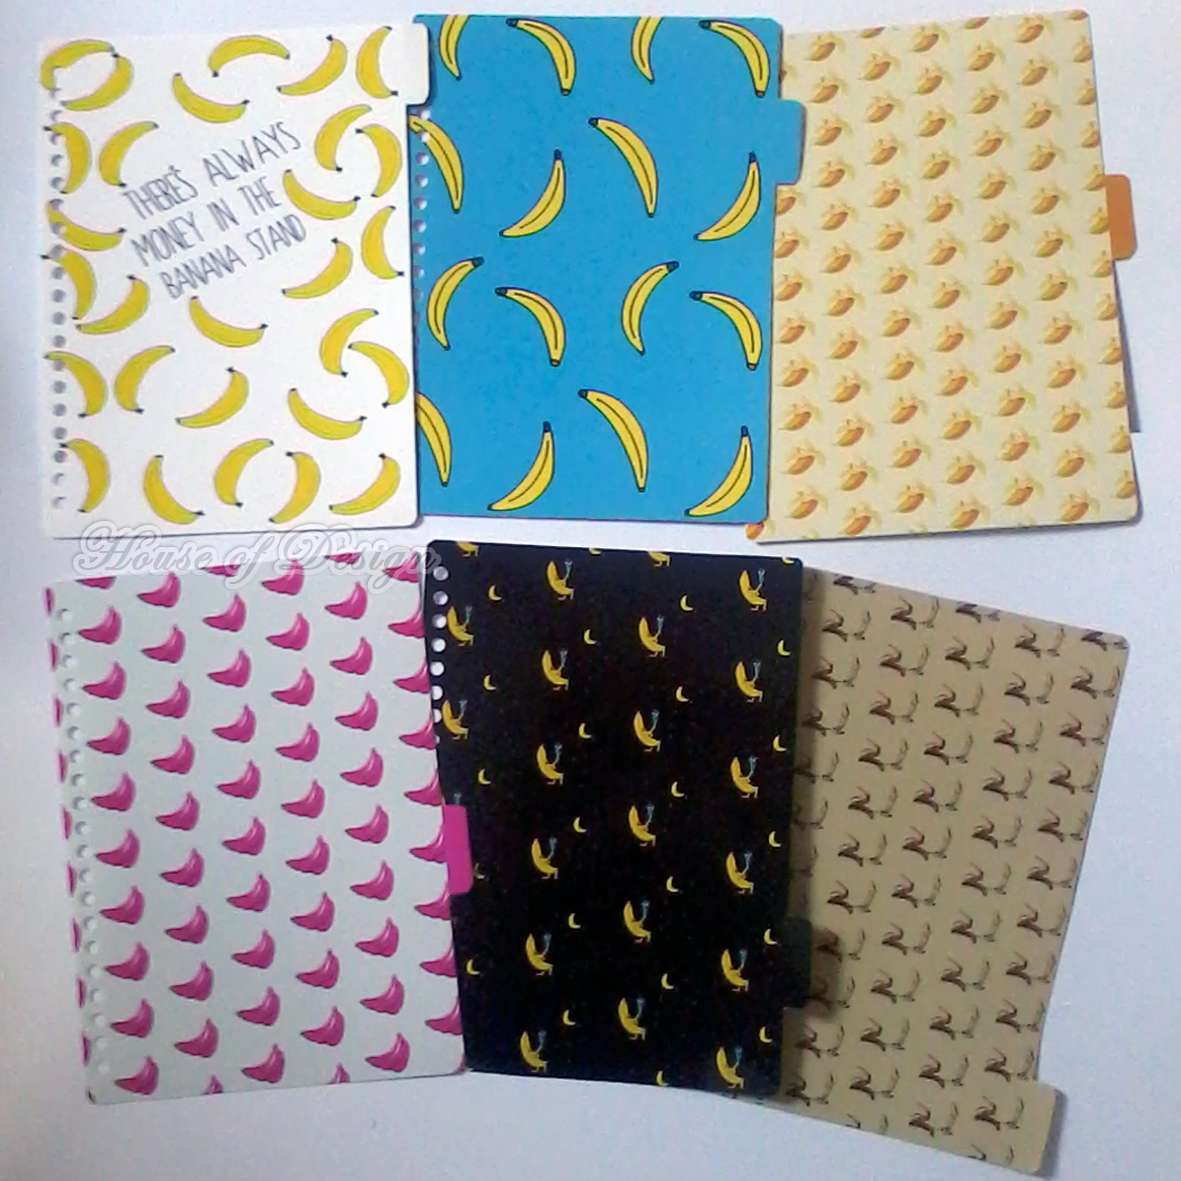 DIVIDER BINDER CUSTOM, PEMBATAS BINDER CUSTOM, PEMBATAS BINDER 20RING UKURAN A5 CUSTOM, PEMBATAS BINDER FRUITS TUMBLR, PEMBATAS BINDER BANANA